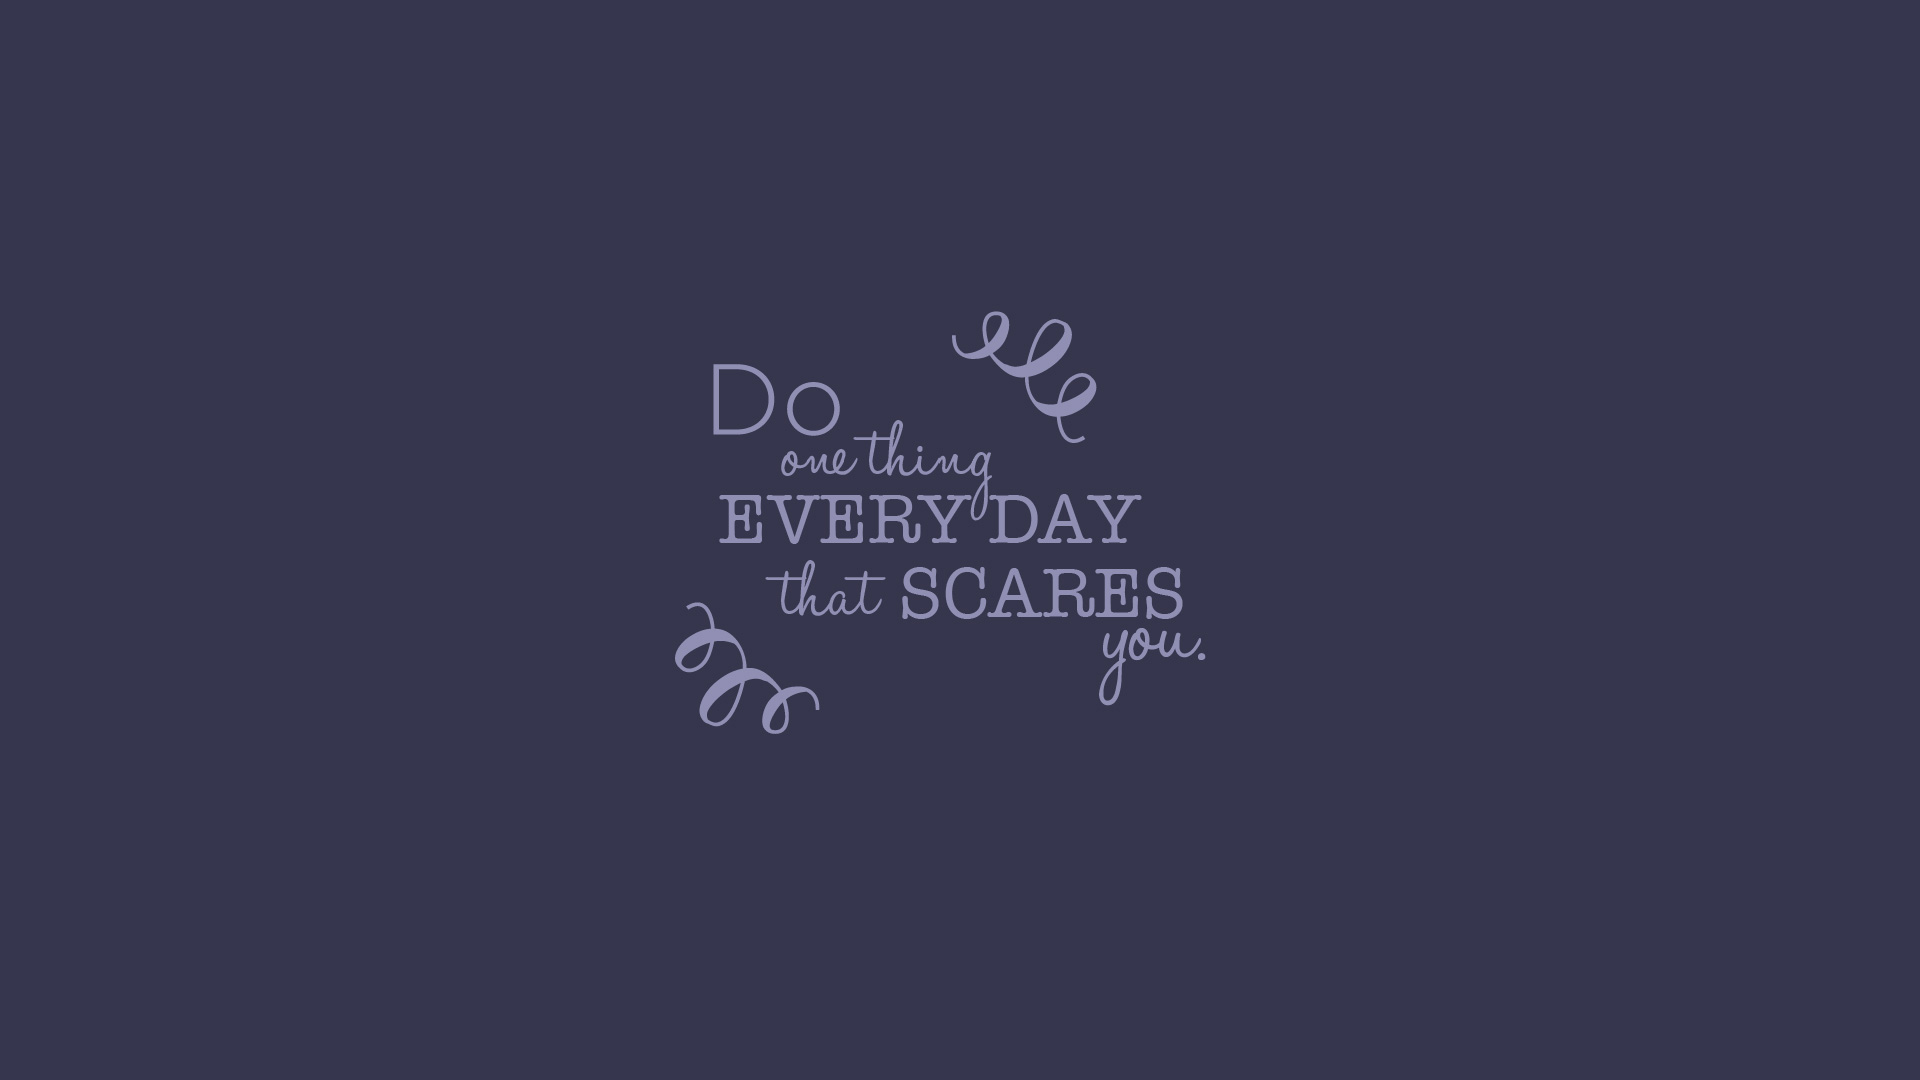 Positive Quotes Wallpapers Top Free Positive Quotes Backgrounds